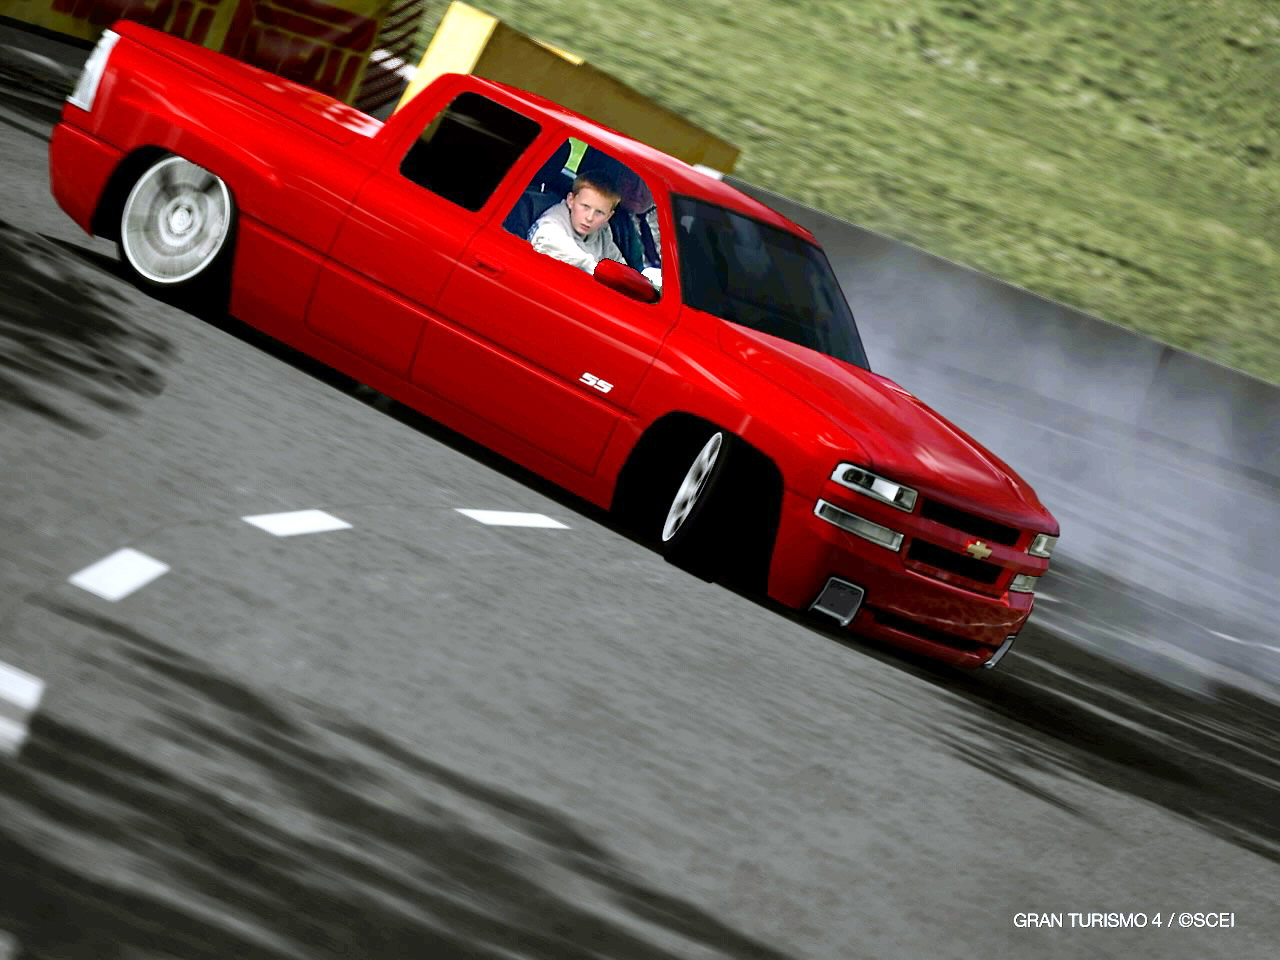 WILLIAM-DRIFTING-A-PICKUP.JPG